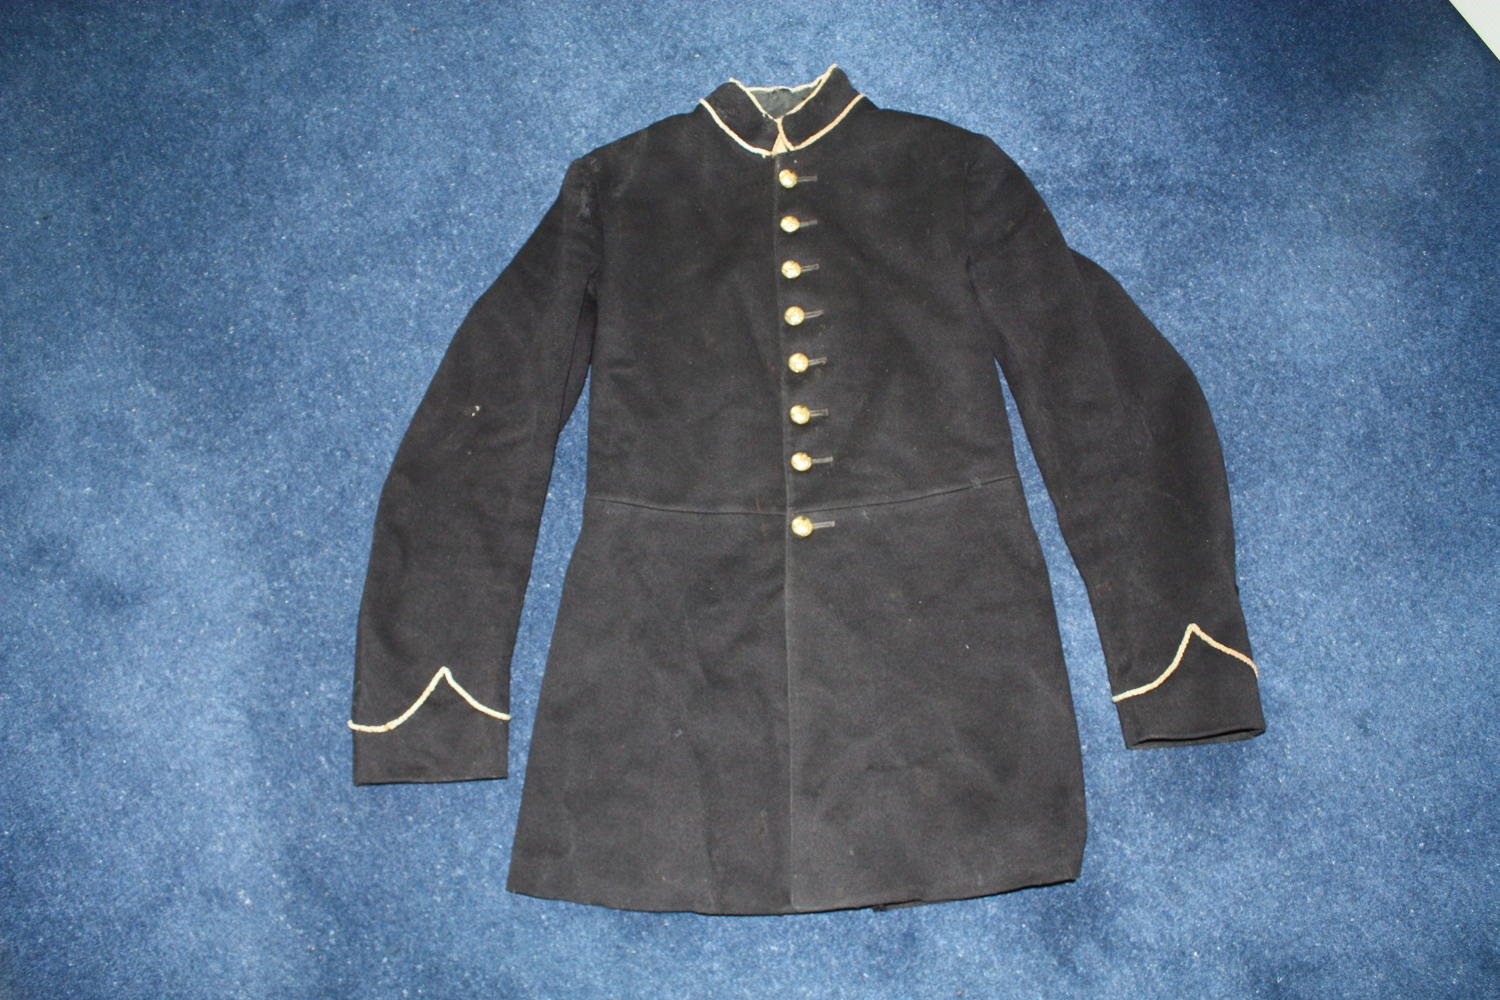 U.S. CIVIL WAR / INDIAN WARS UNION FROCK COAT